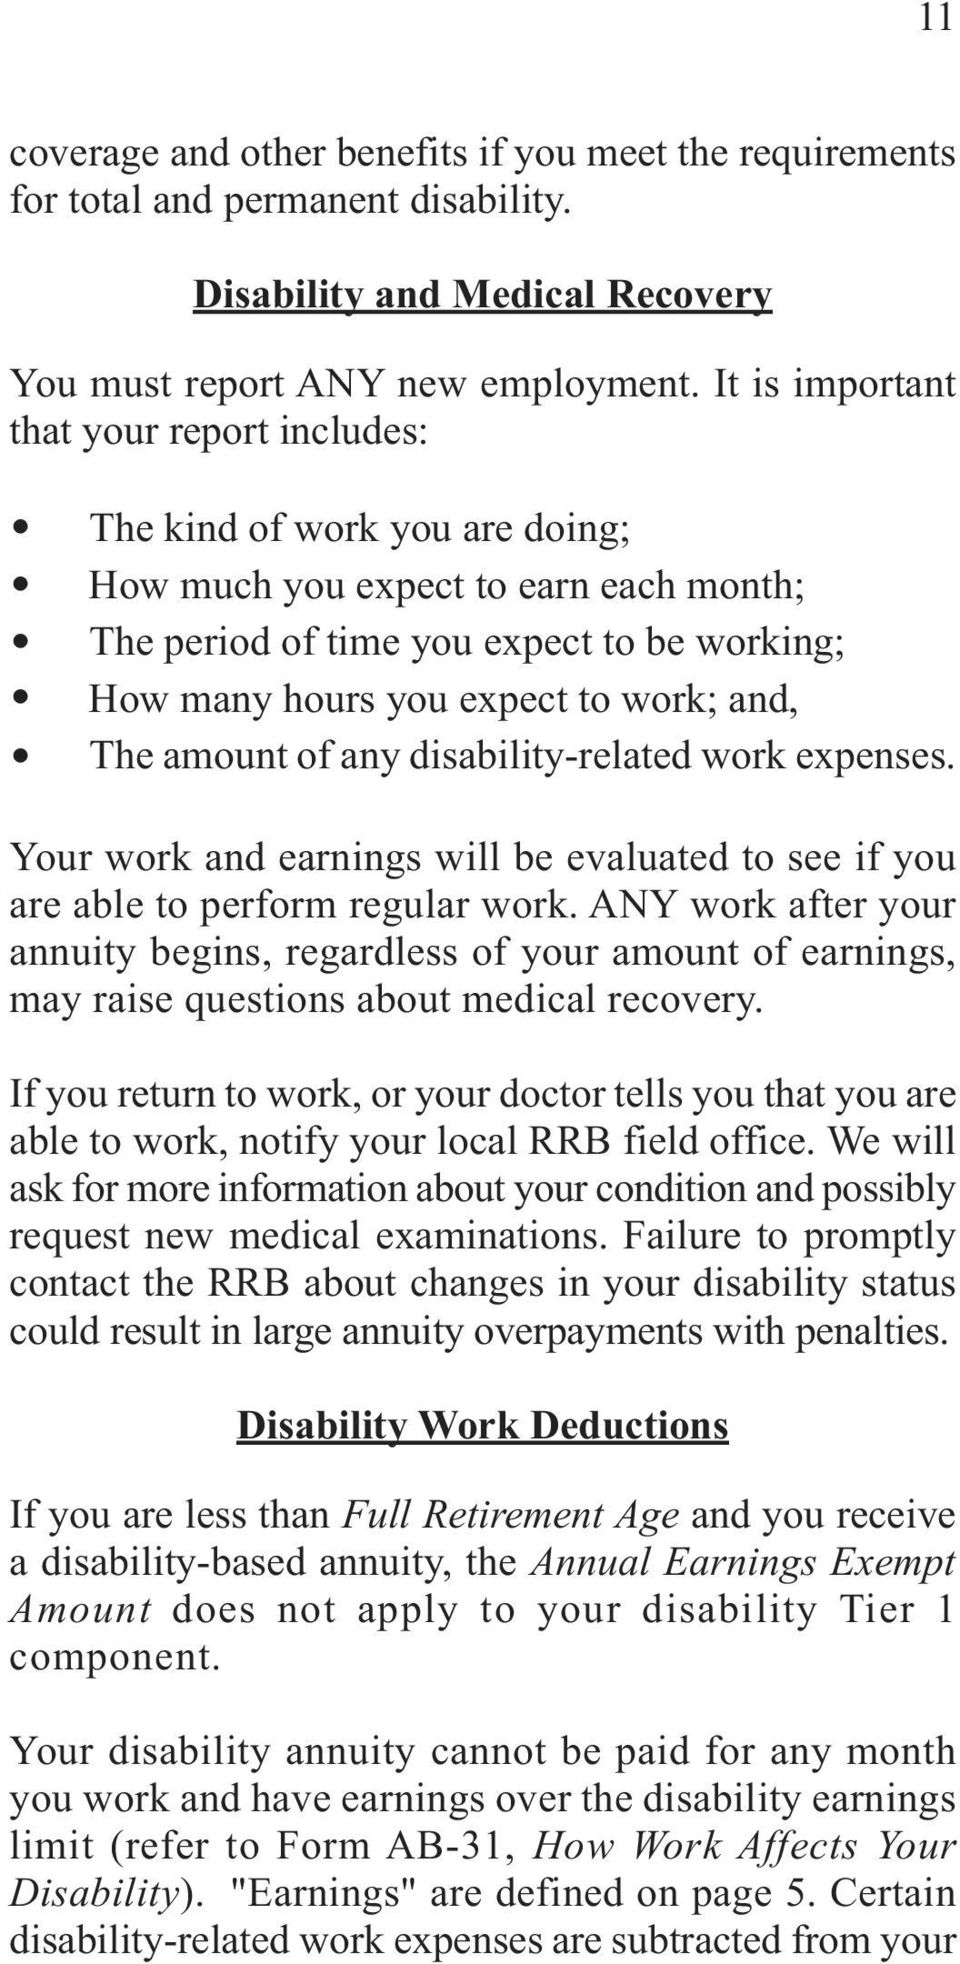 "period of time you expect to be working; The period of time you expect to be working; "" How many hours you expect to work; and, "" How The many amount hours of you any expect disability-related to"